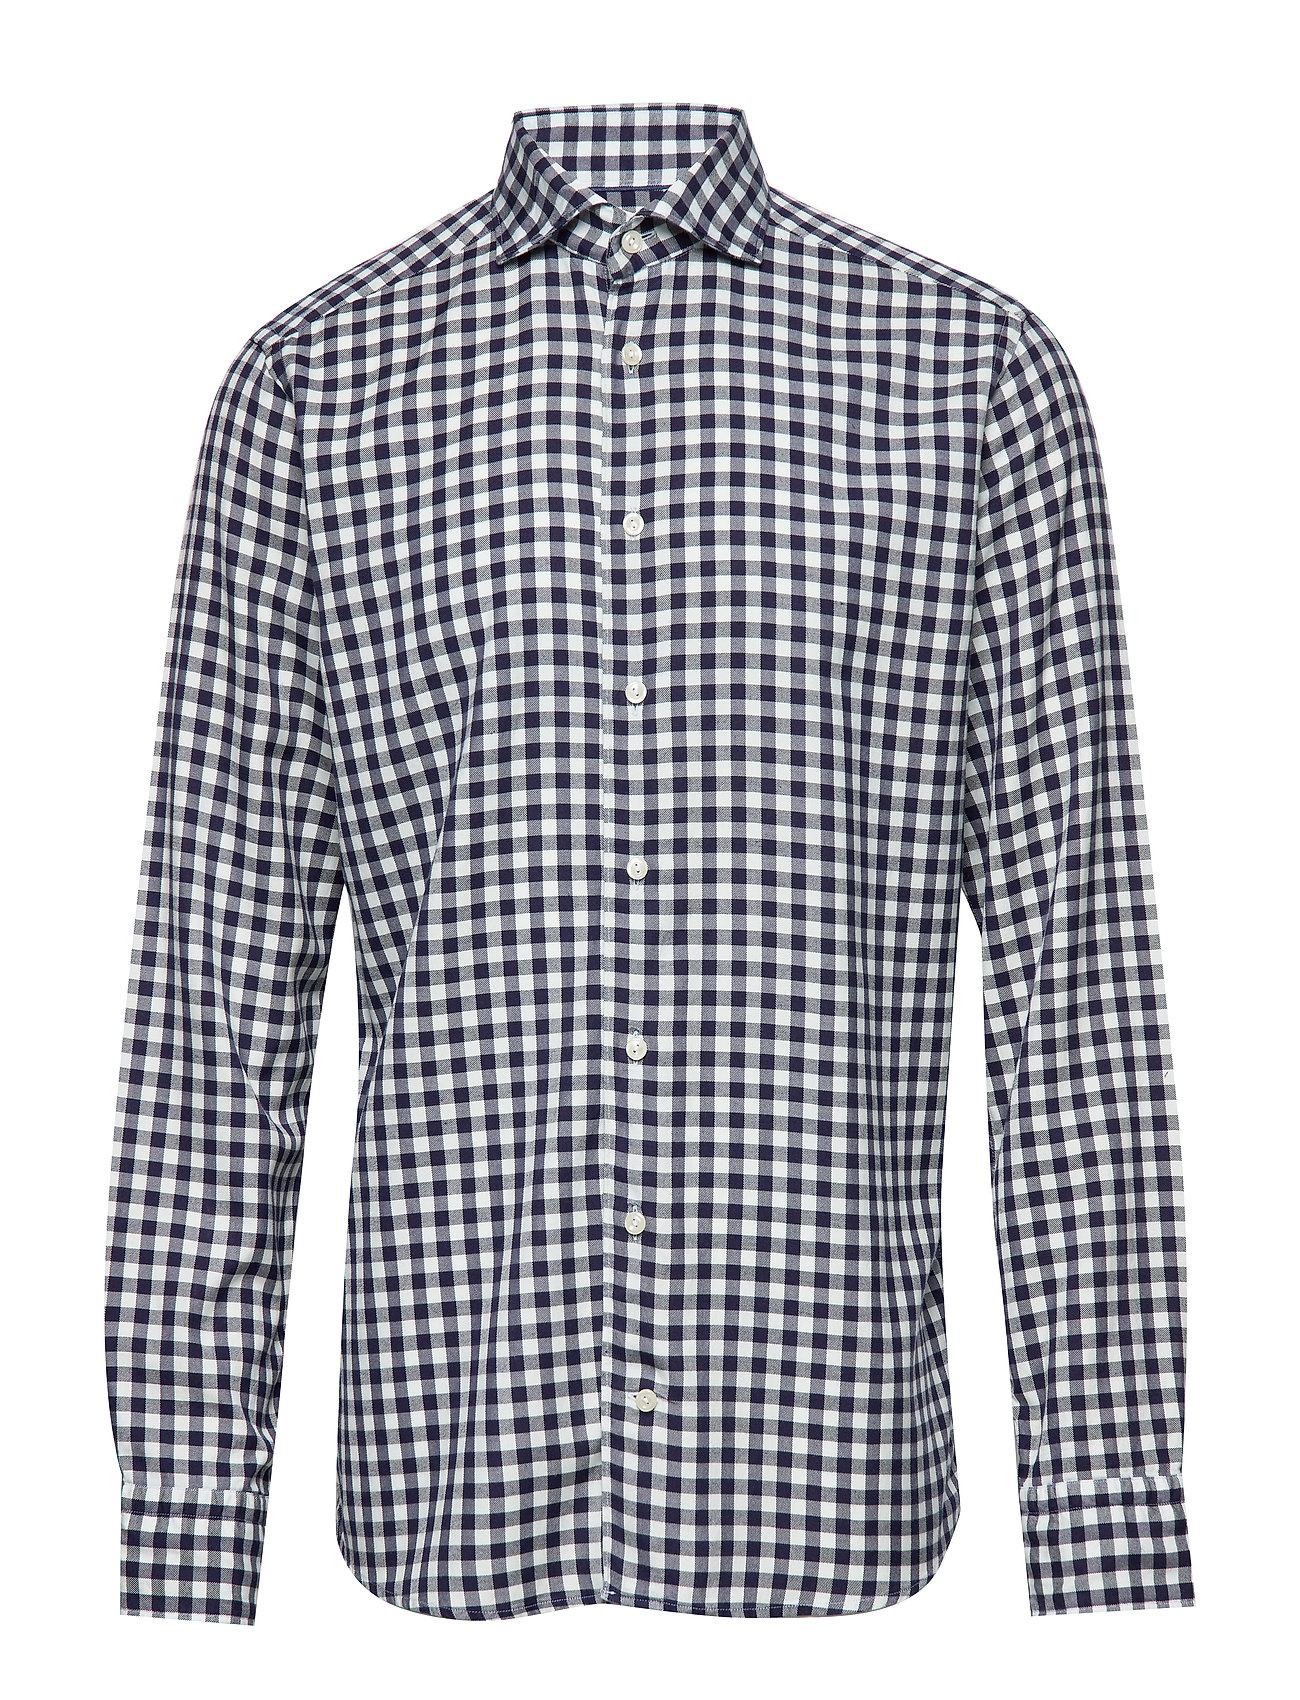 Eton Soft Navy Gingham Checked Cotton-Tencel Shirt - BLUE